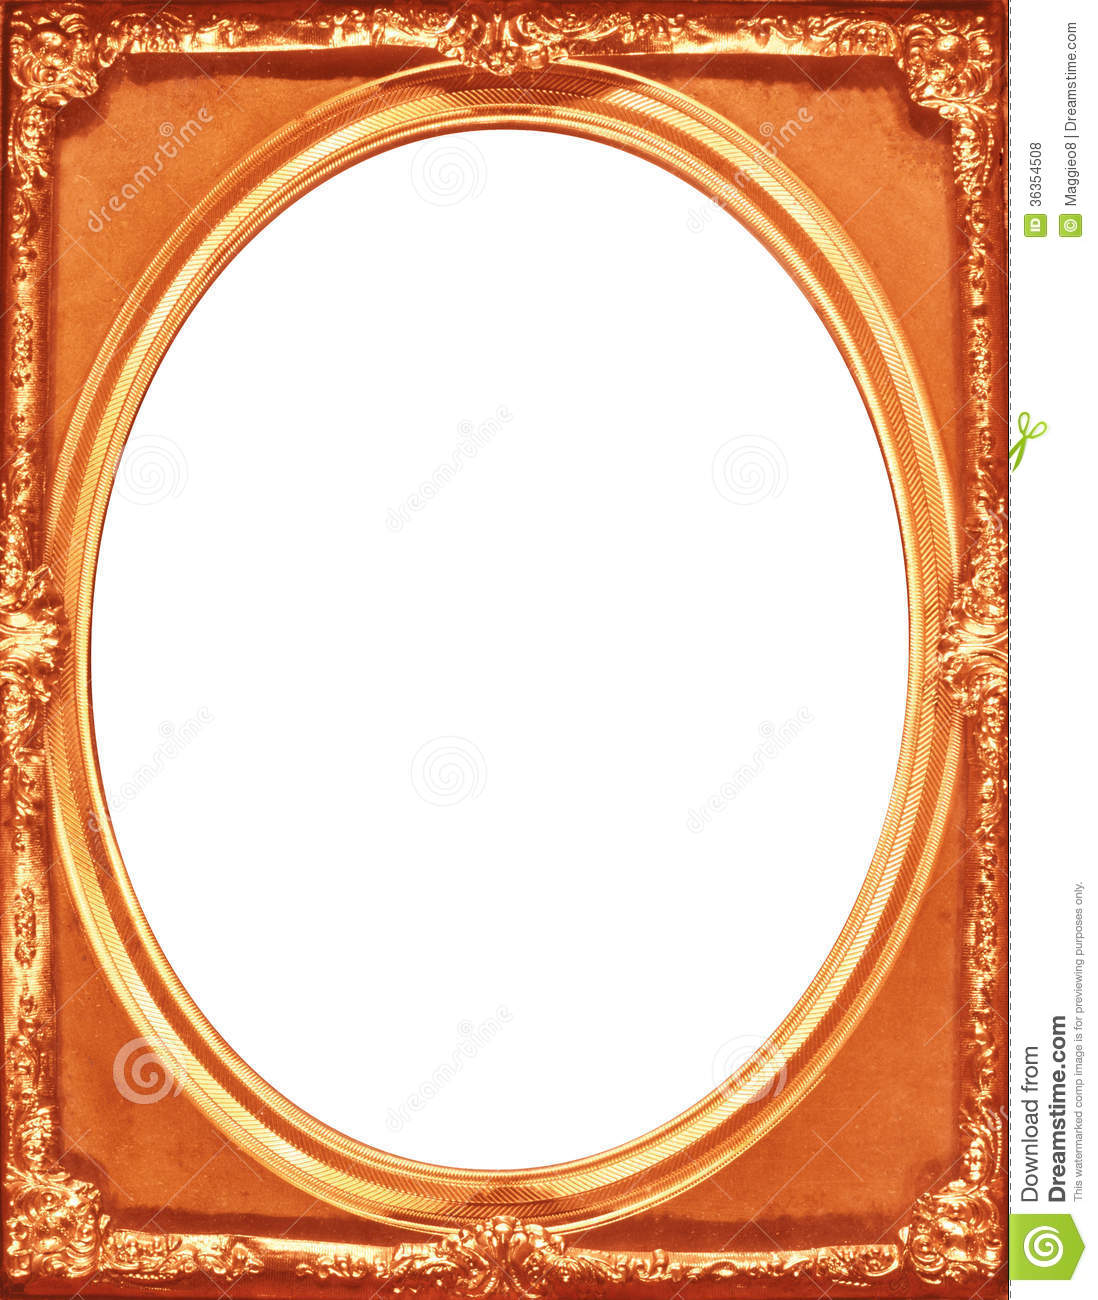 vintage copper picture frame